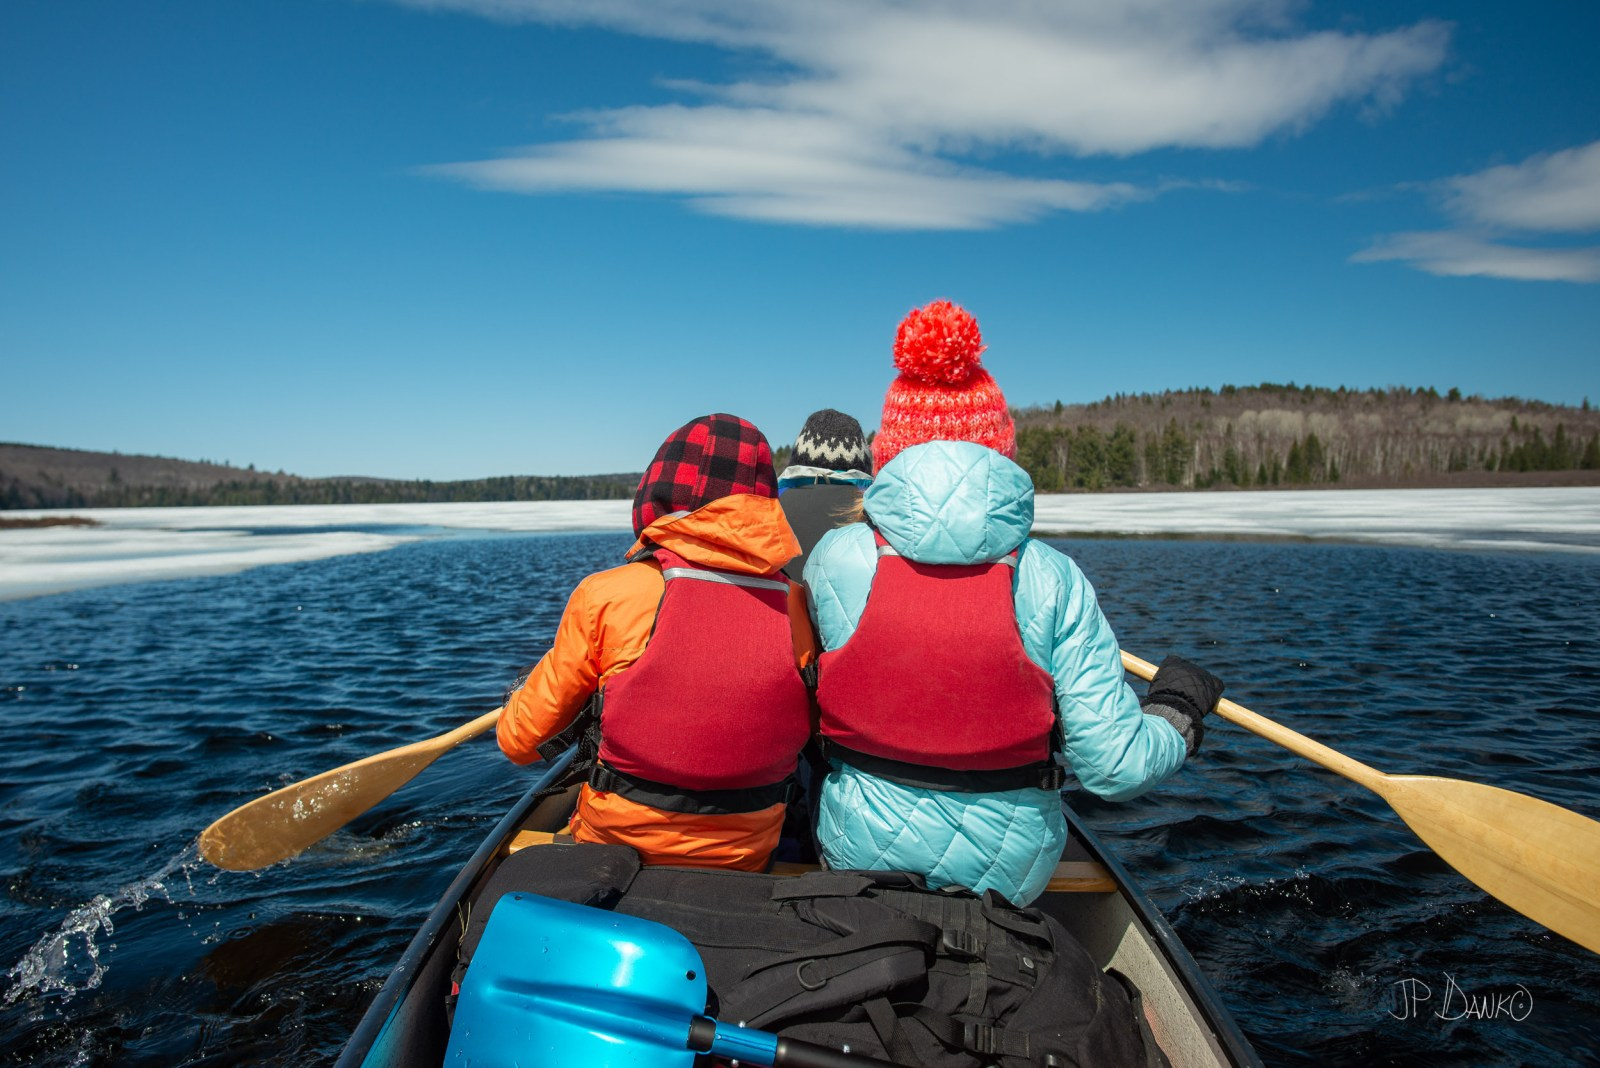 Spring Red Canoe Trip Backcountry Wilderness Ice Lake Sunny Day